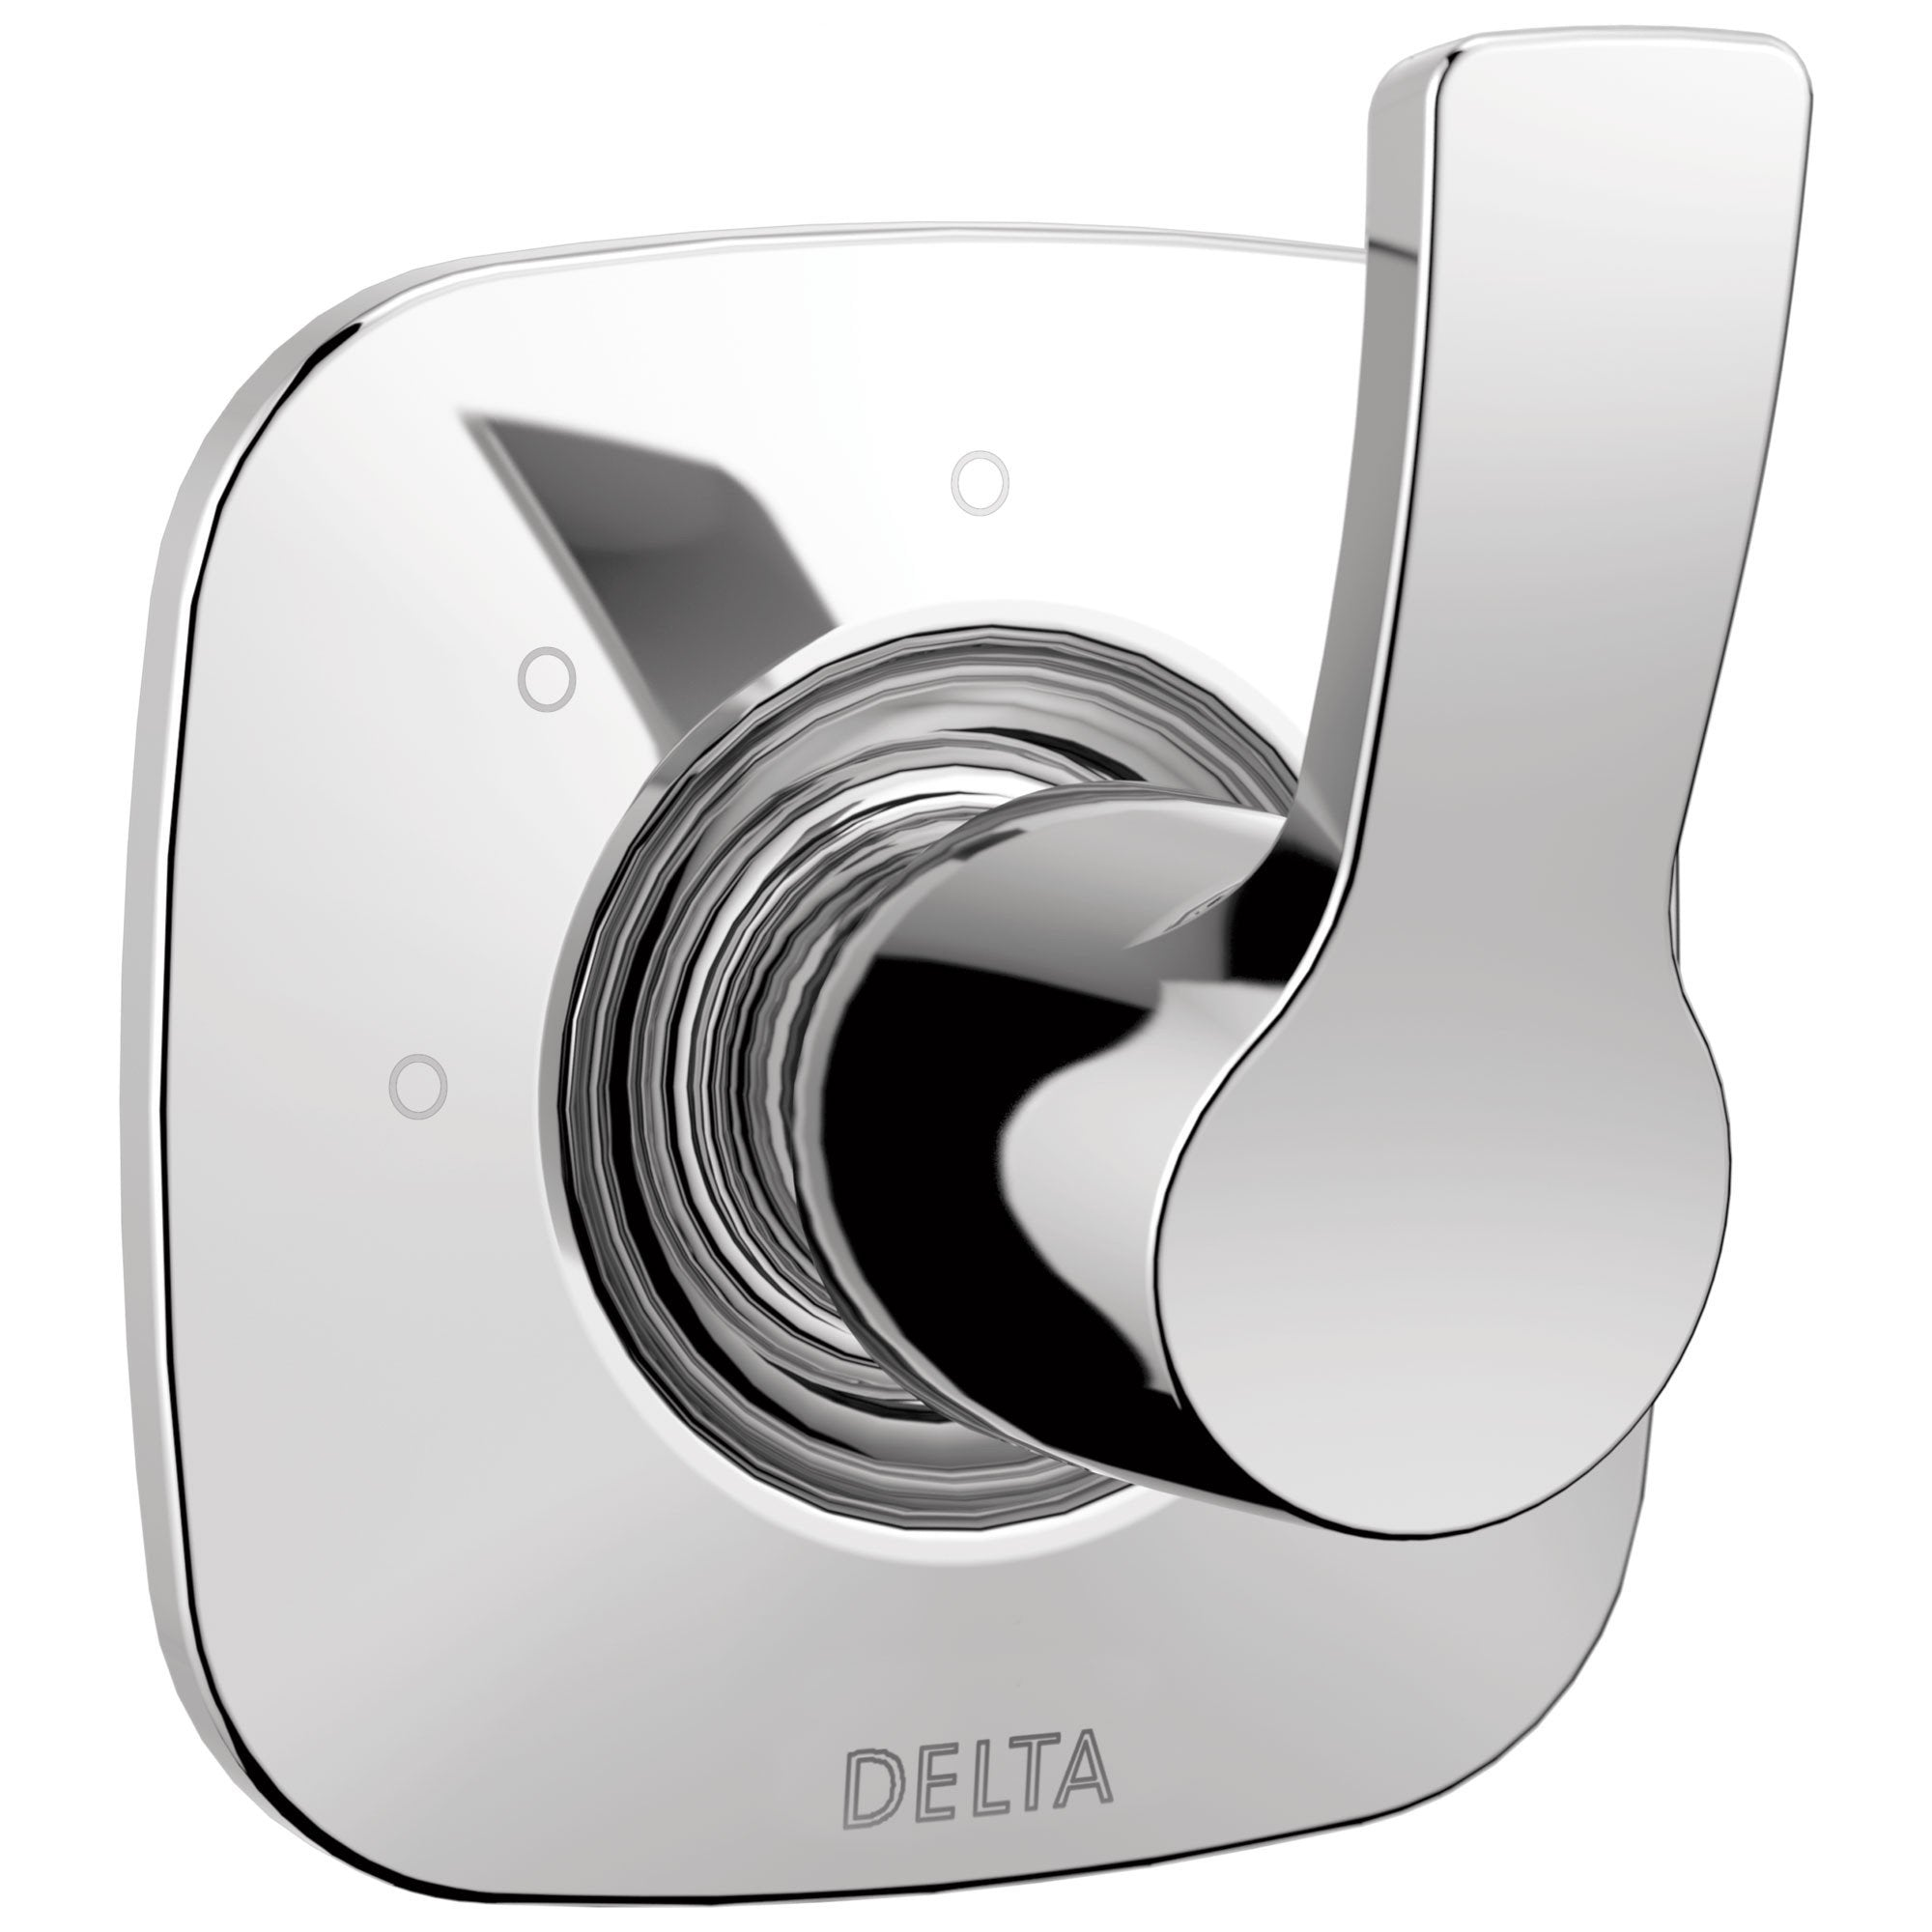 Delta Tesla Collection Chrome Finish Modern 3-Setting 2-Port Single Handle Shower Diverter Trim Kit (Valve Sold Separately) 714331